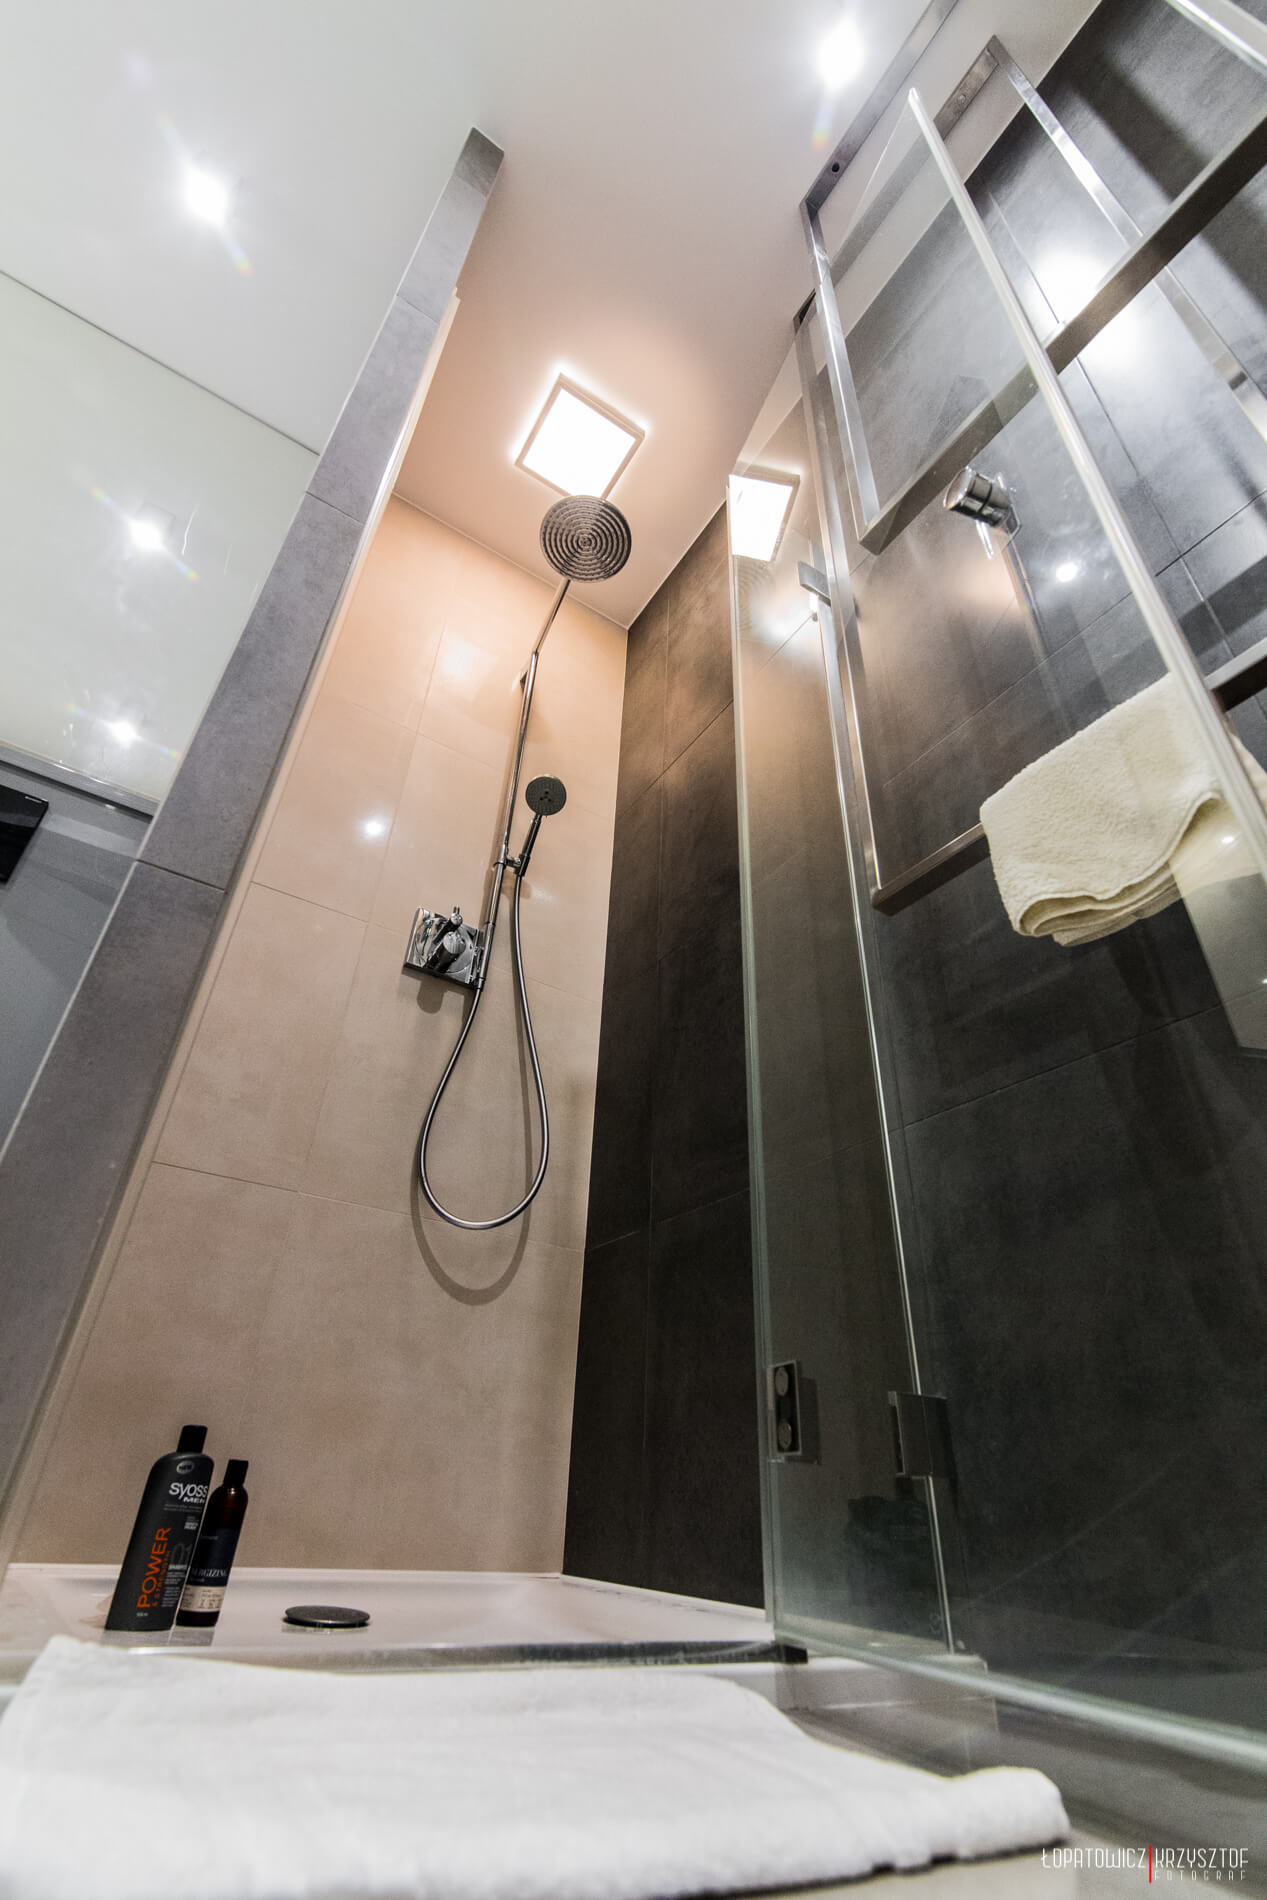 Low view of shower stall, showcasing floor to ceiling marble trim and glass door, plus in-shower ceiling light.